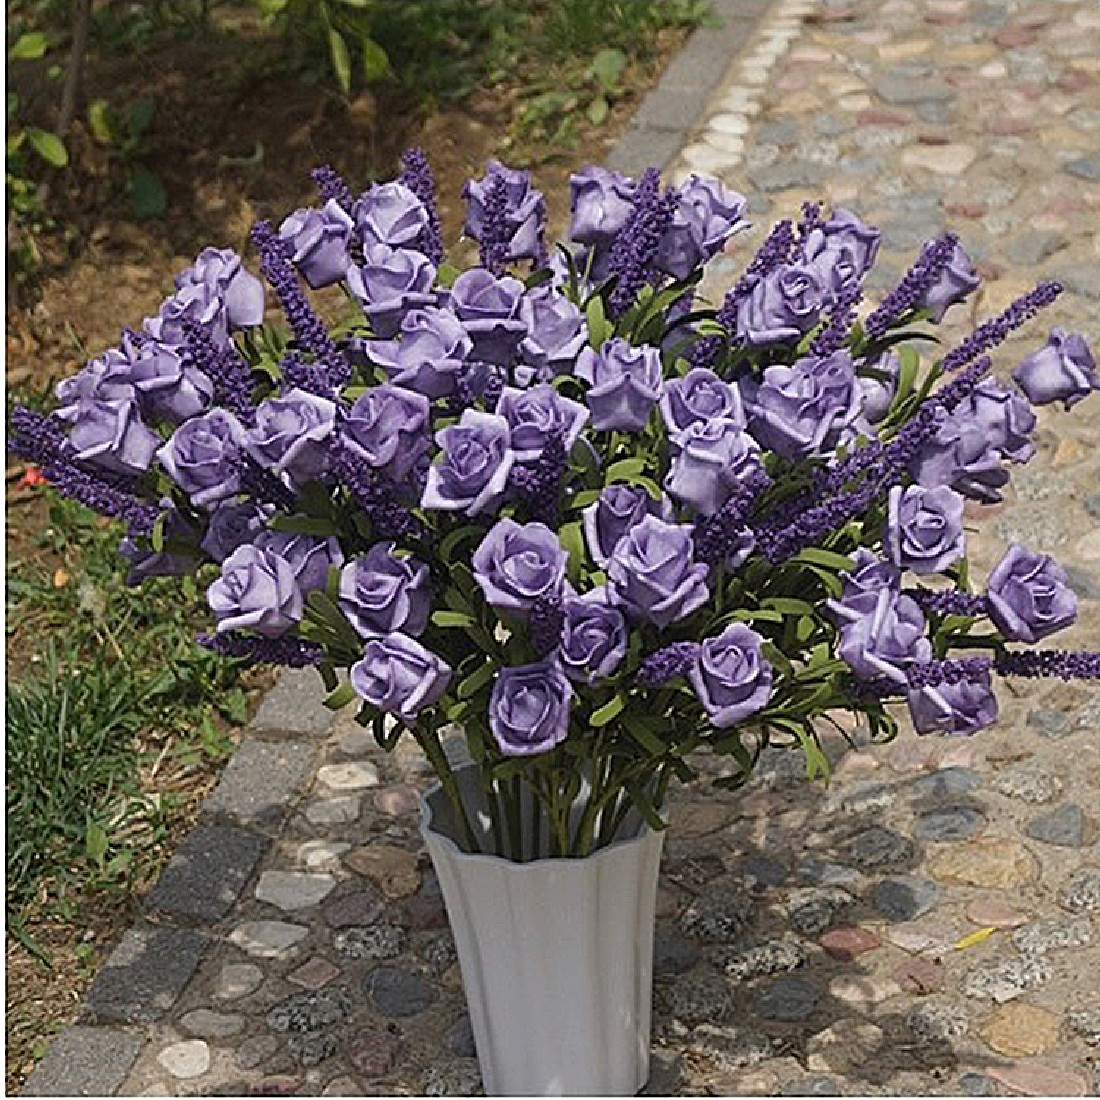 Retail wedding bridal 9 heads lavender rose artificial peony silk retail wedding bridal 9 heads lavender rose artificial peony silk flowers hydrangea party home decorition flower arrangement in artificial dried flowers dhlflorist Images